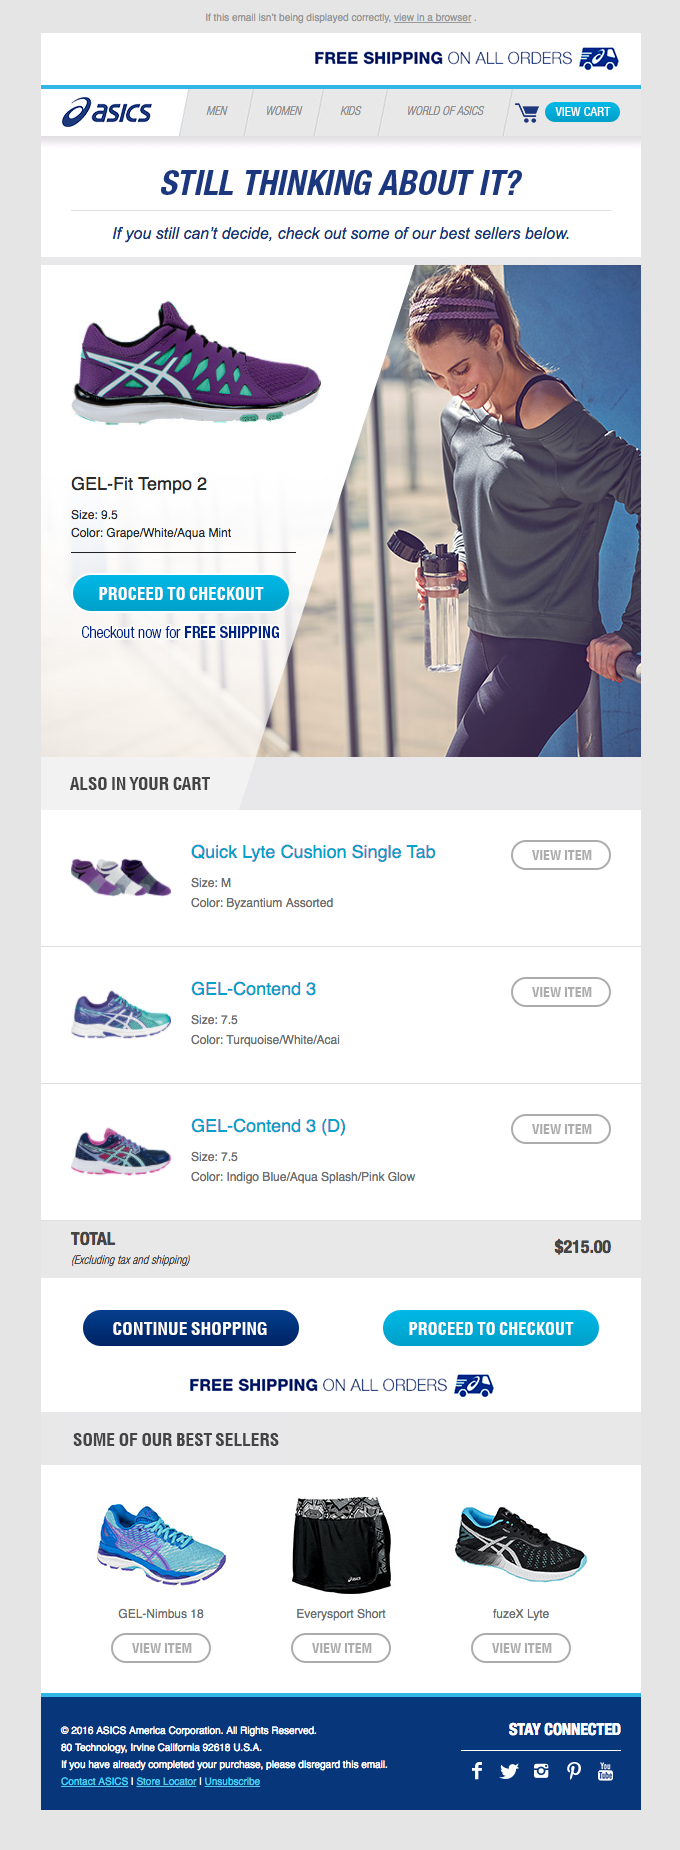 footwear_giant_asics_handling_of_shopping_cart_abandonment.png